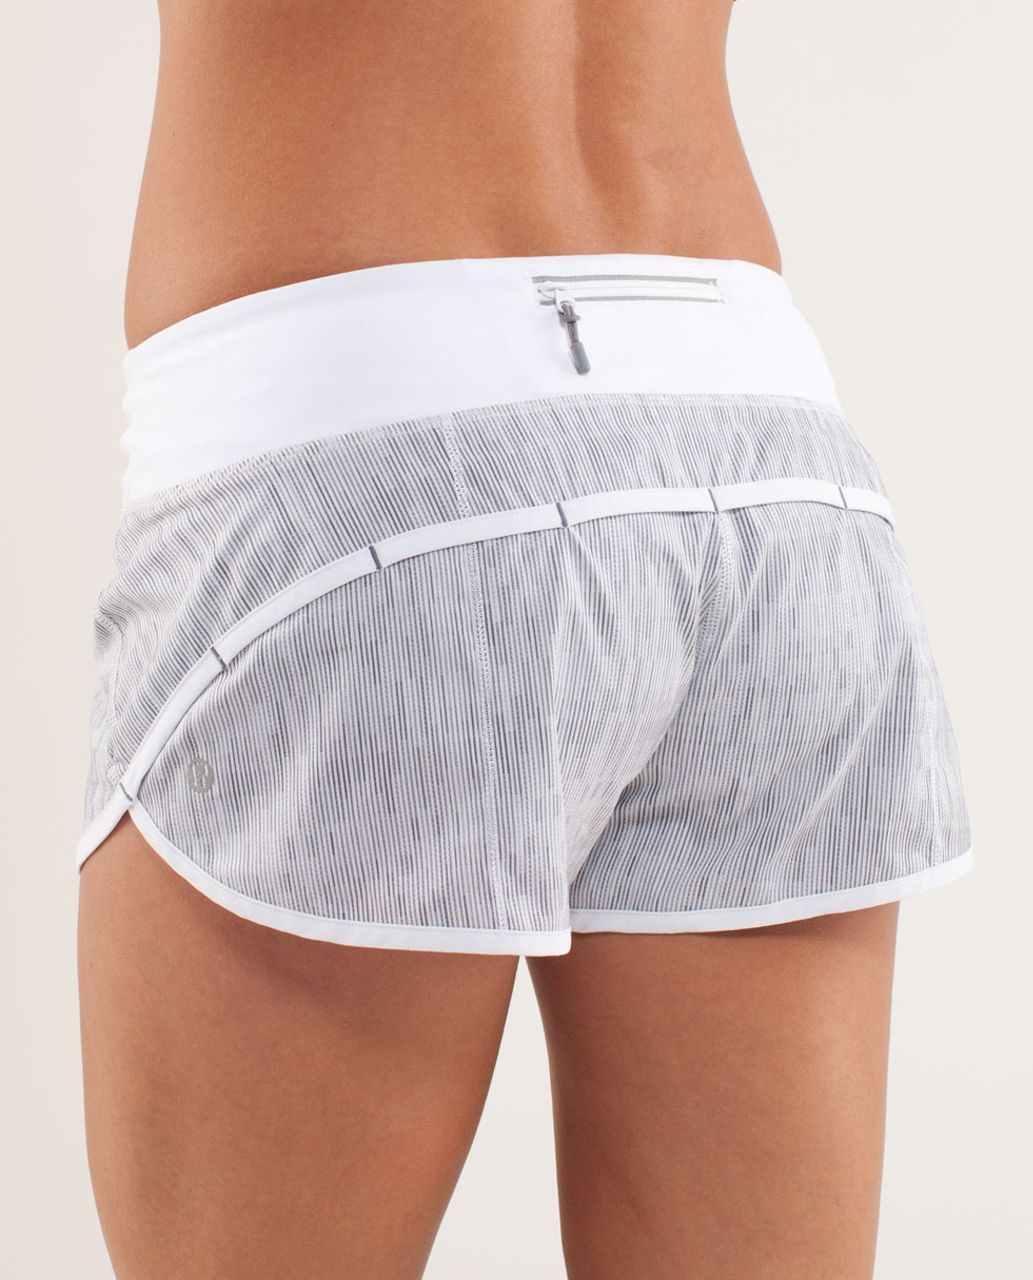 Lululemon Run:  Speed Short - Wee Are From Space White Combo / White (Vertical Stripe)